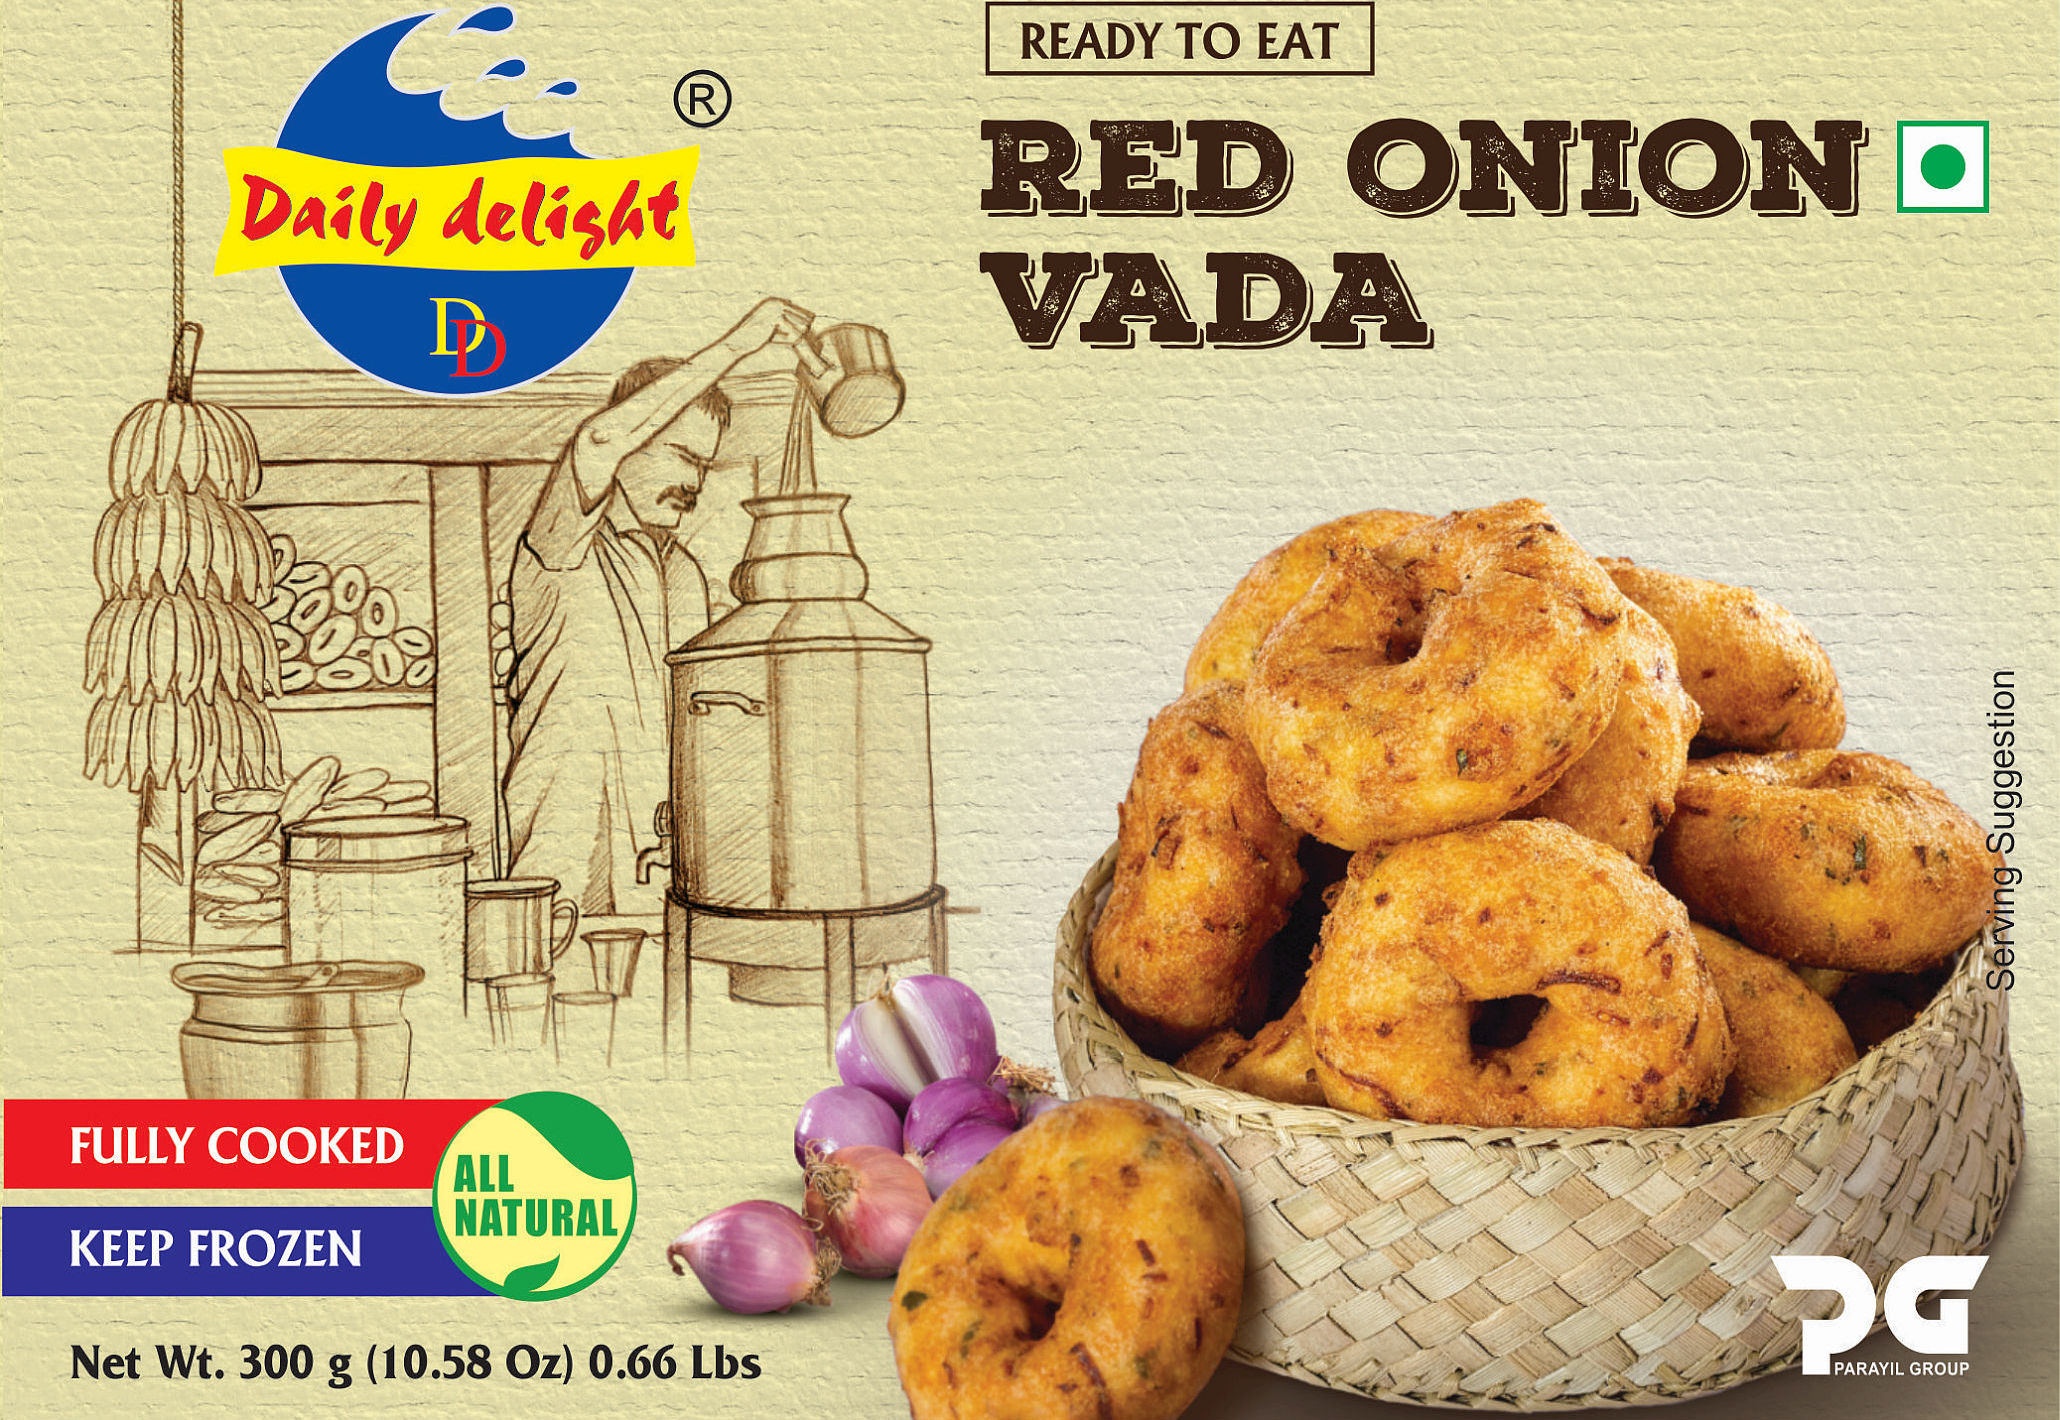 Daily Delight Red Onion Vada